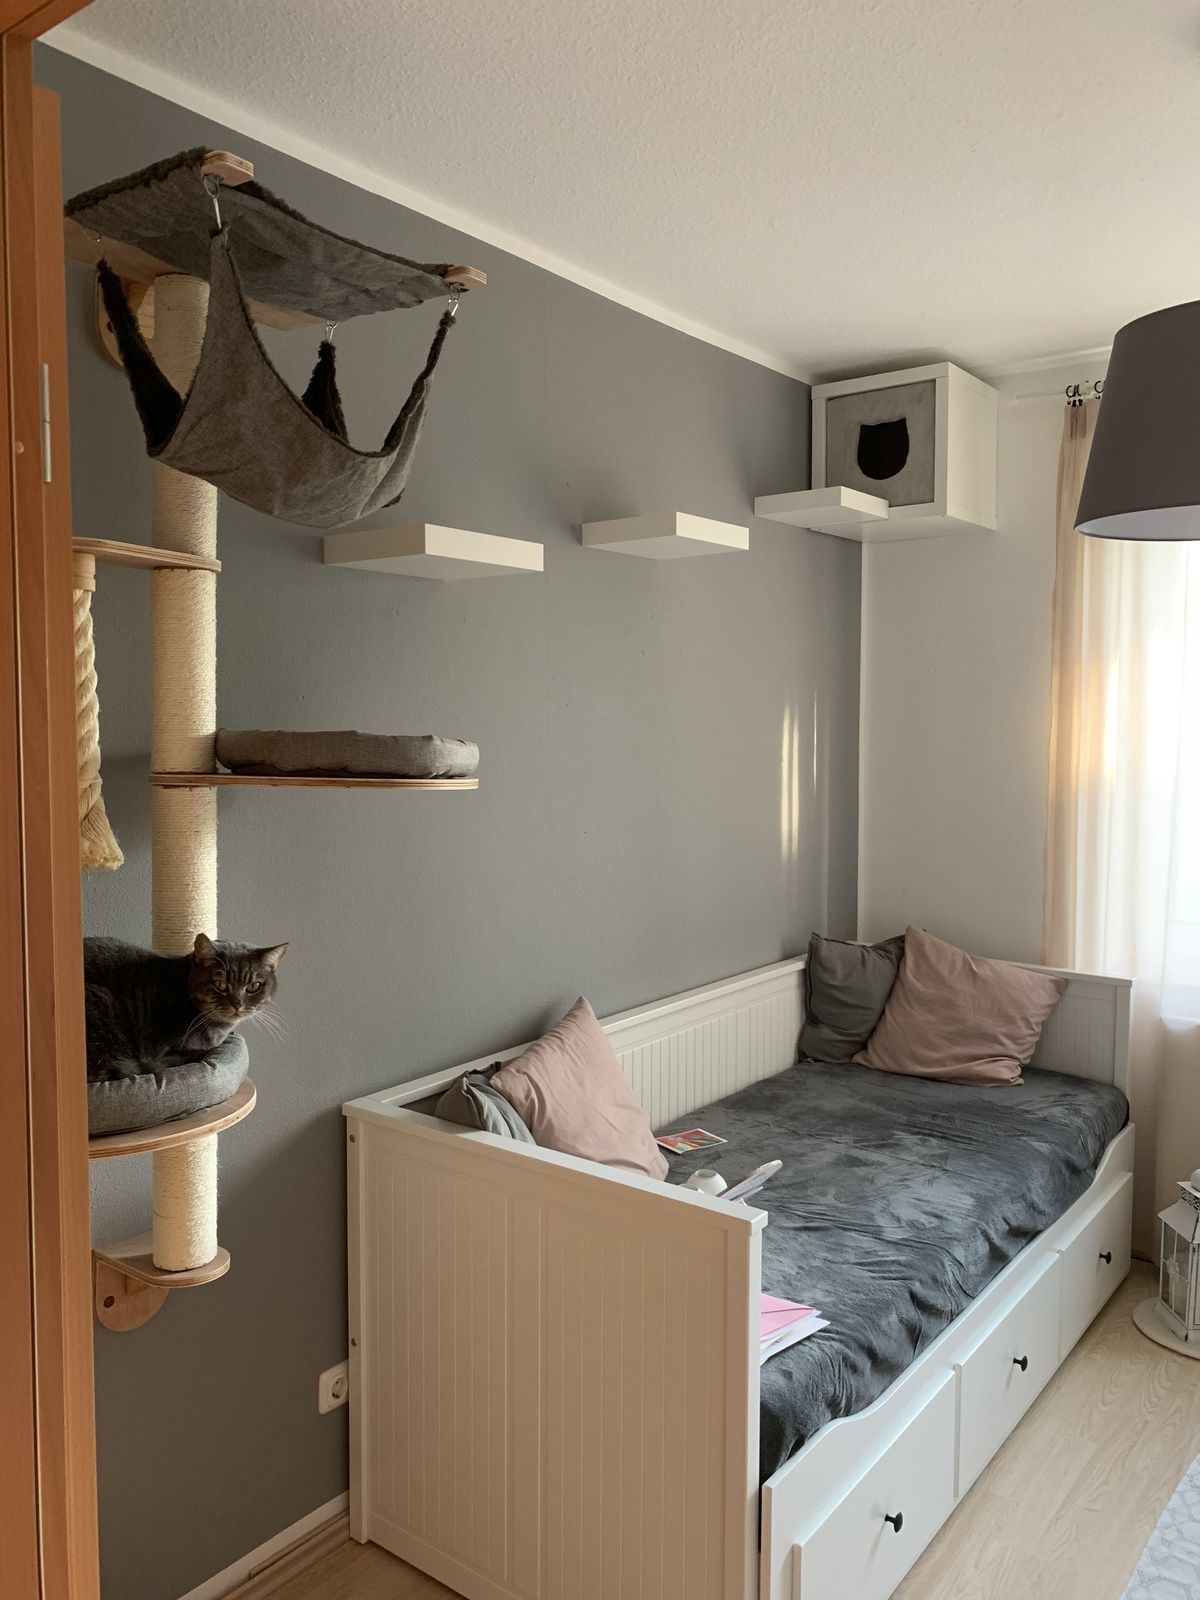 Pin By Lisa Basler On Cat Room Ideas Ikea Small Bedroom